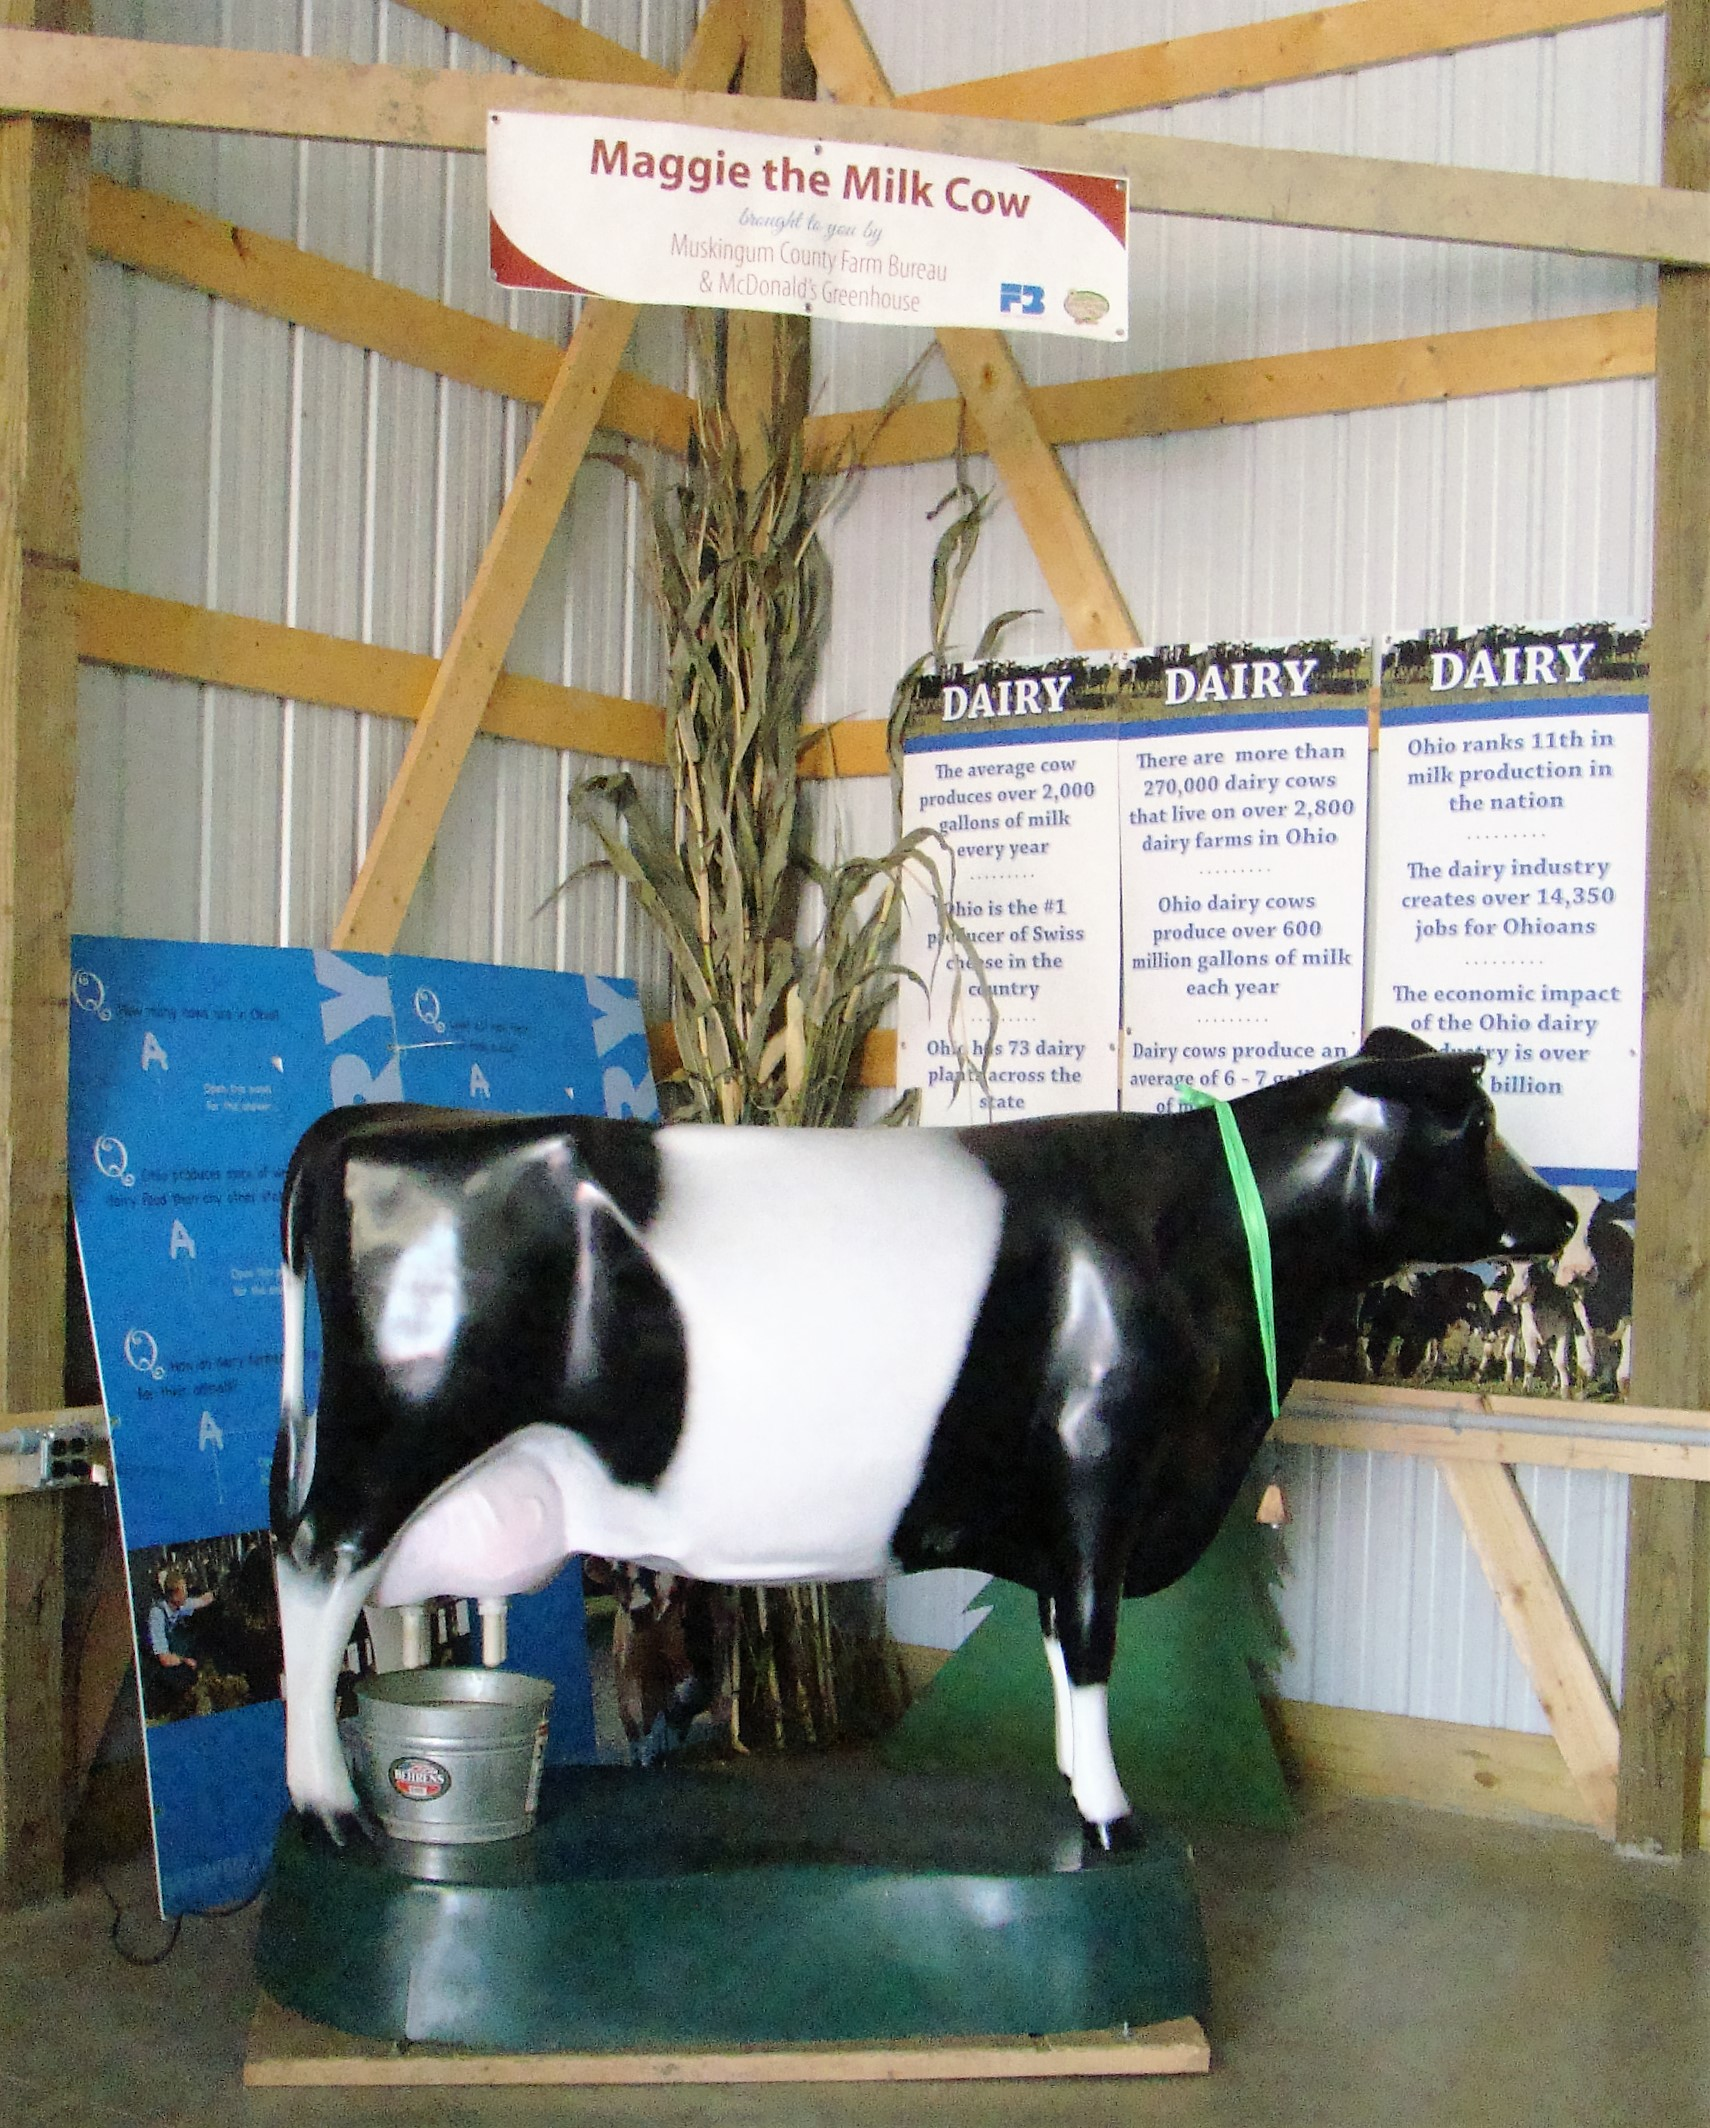 Maggie the Milk Cow even goes to the county fair for demonstrations on how to milk a cow.